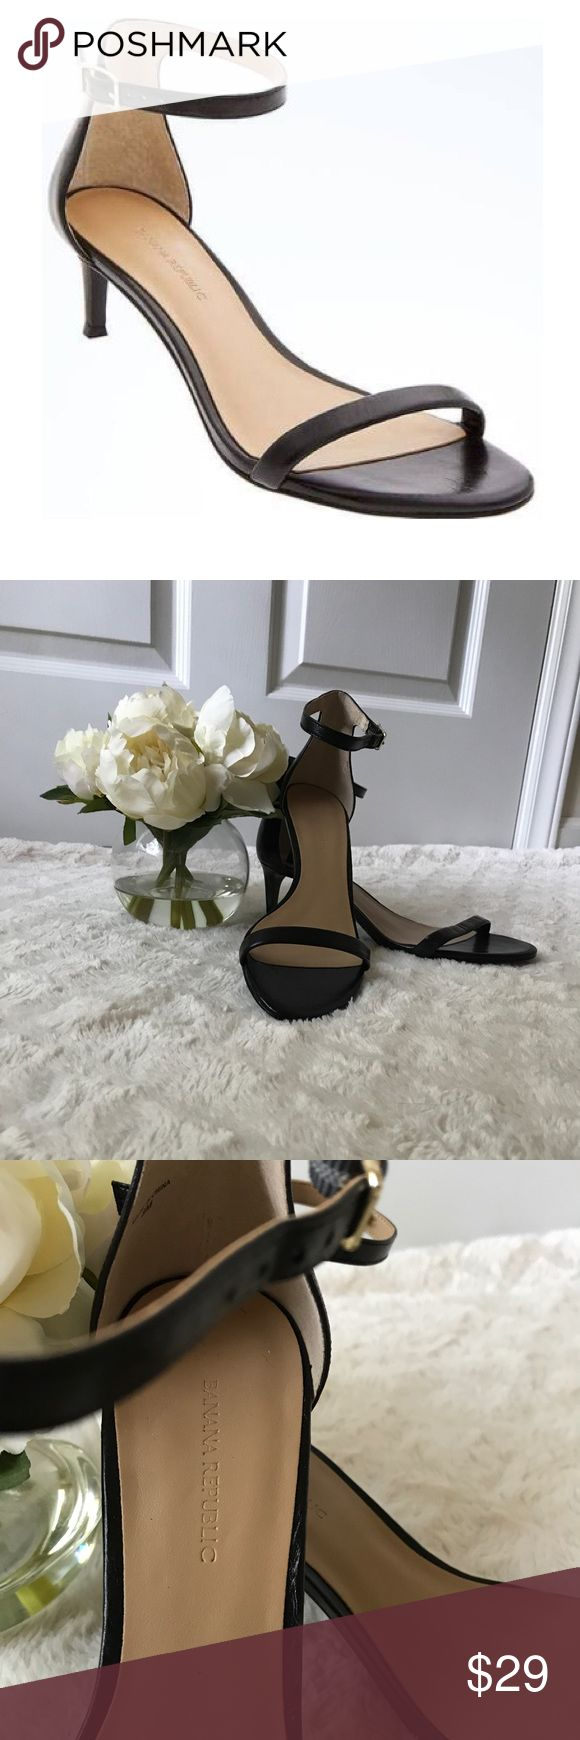 Banana Republic Strappy Black Kitten Heel Sandals Banana Republic Strappy Black Kitten Heel Sandals size 8. Never worn! Banana Republic Shoes Heels